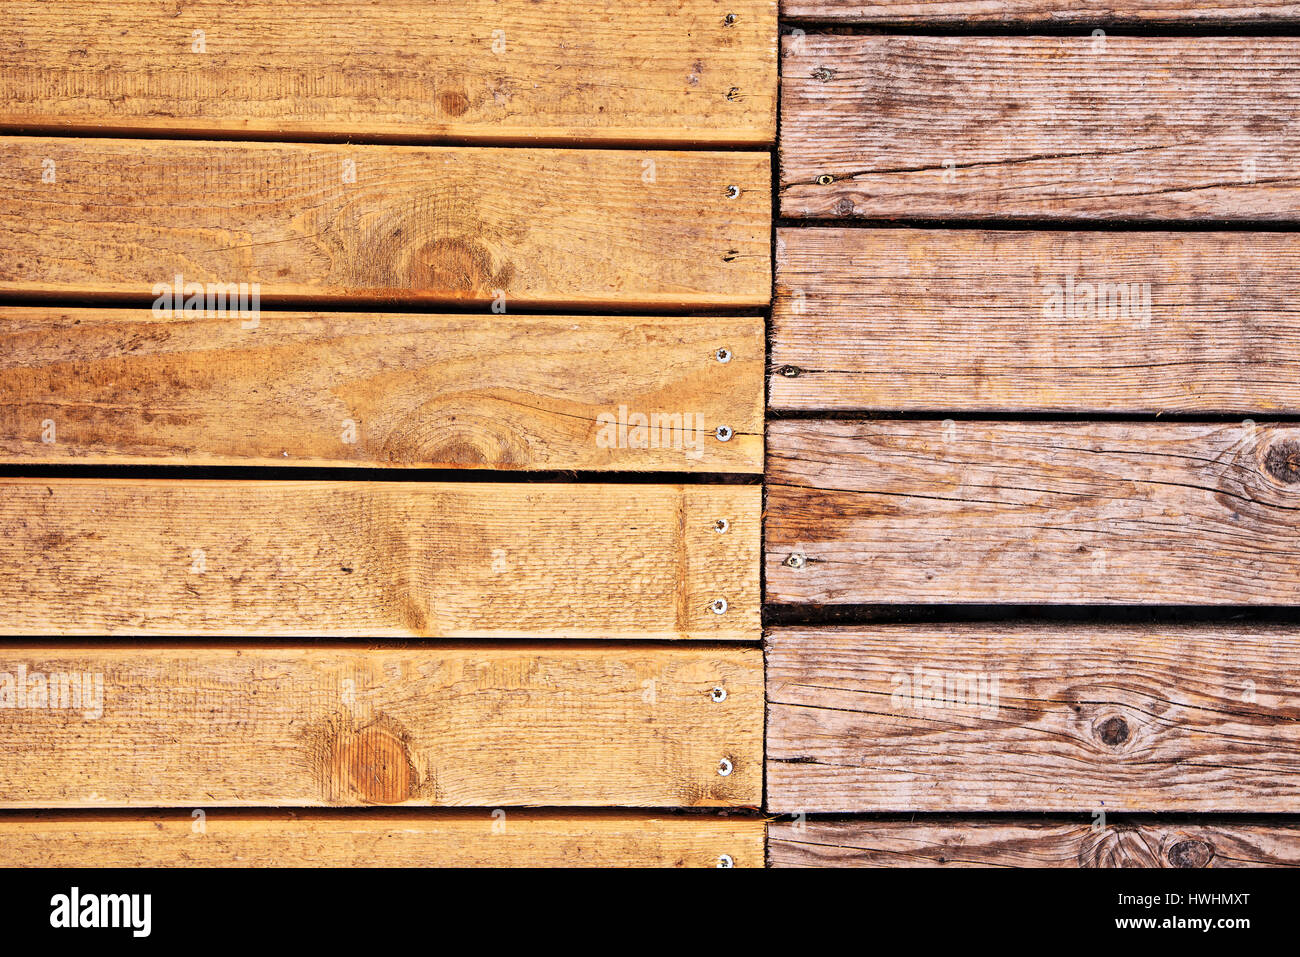 Weathered outdoor patio wooden flooring texture, hardwood planks background - Stock Image